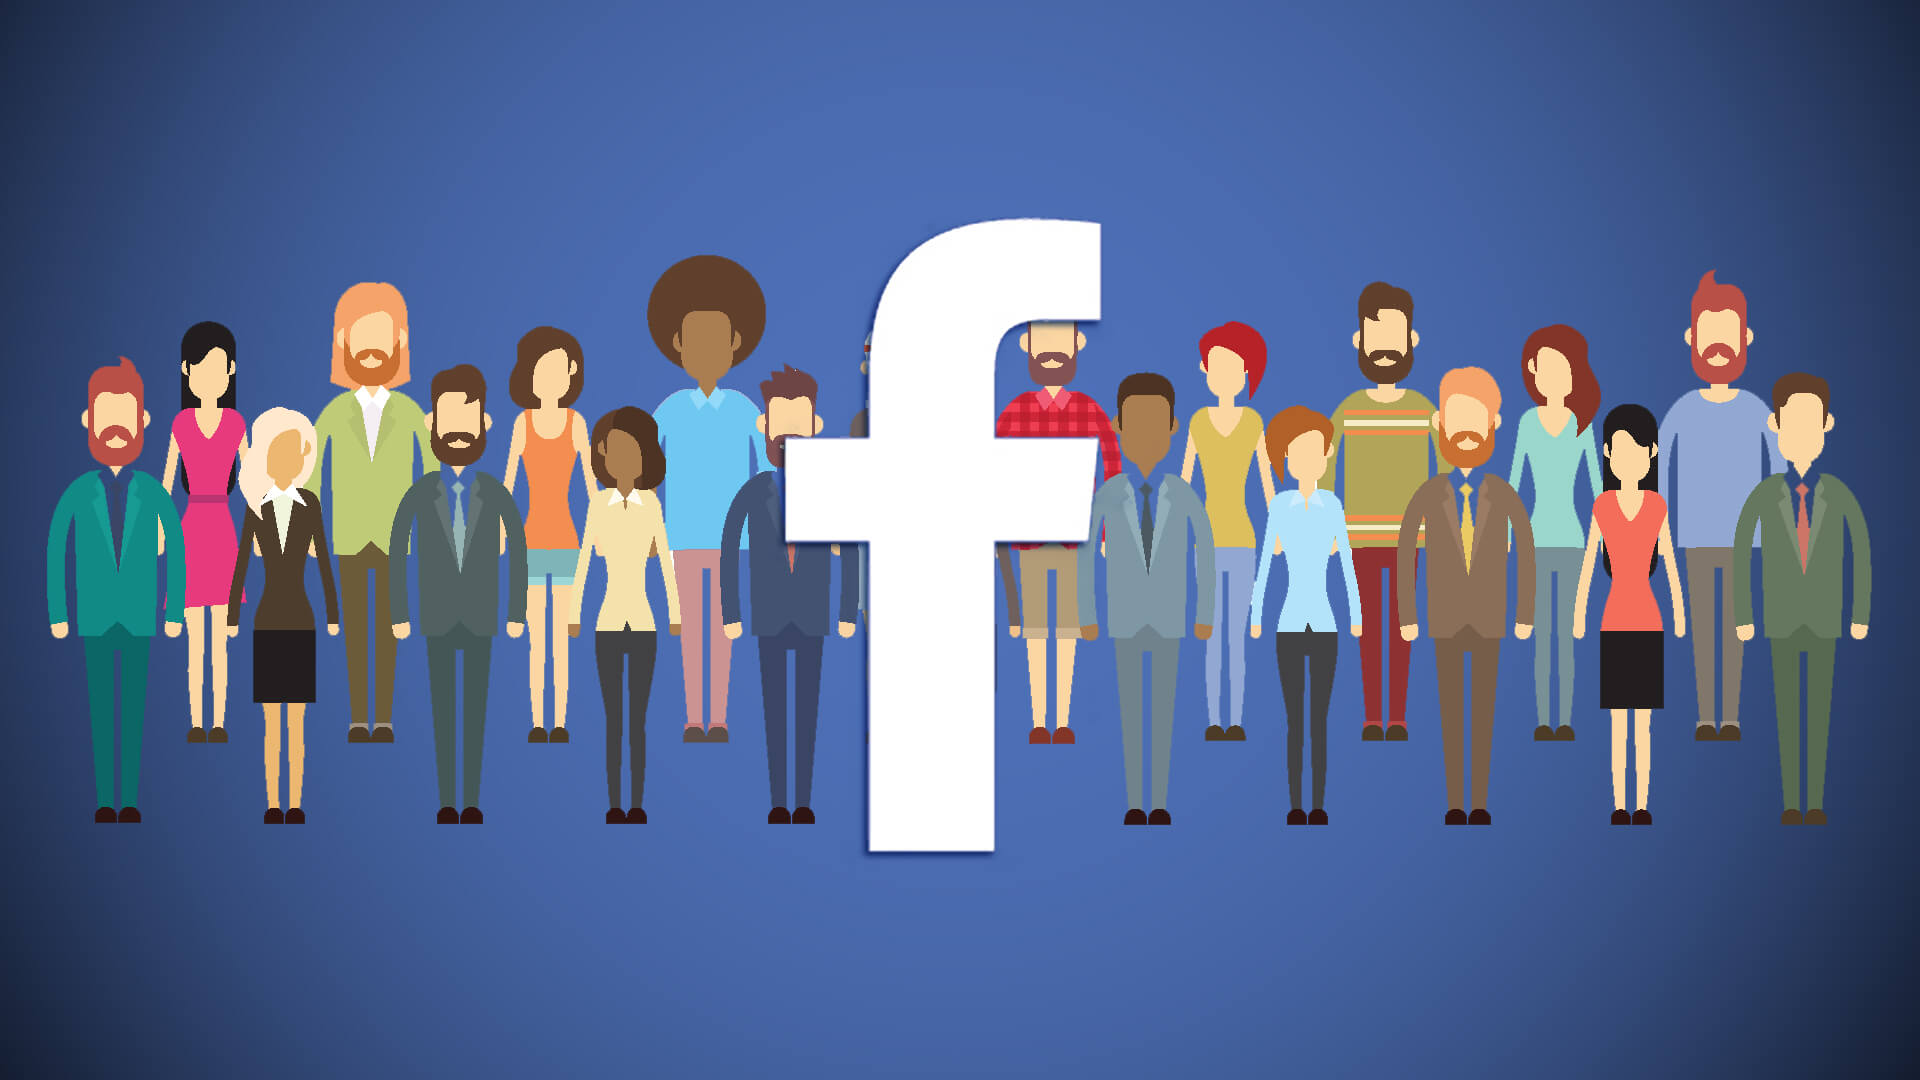 facebook-users-people-diversity1-ss-1920 (1)